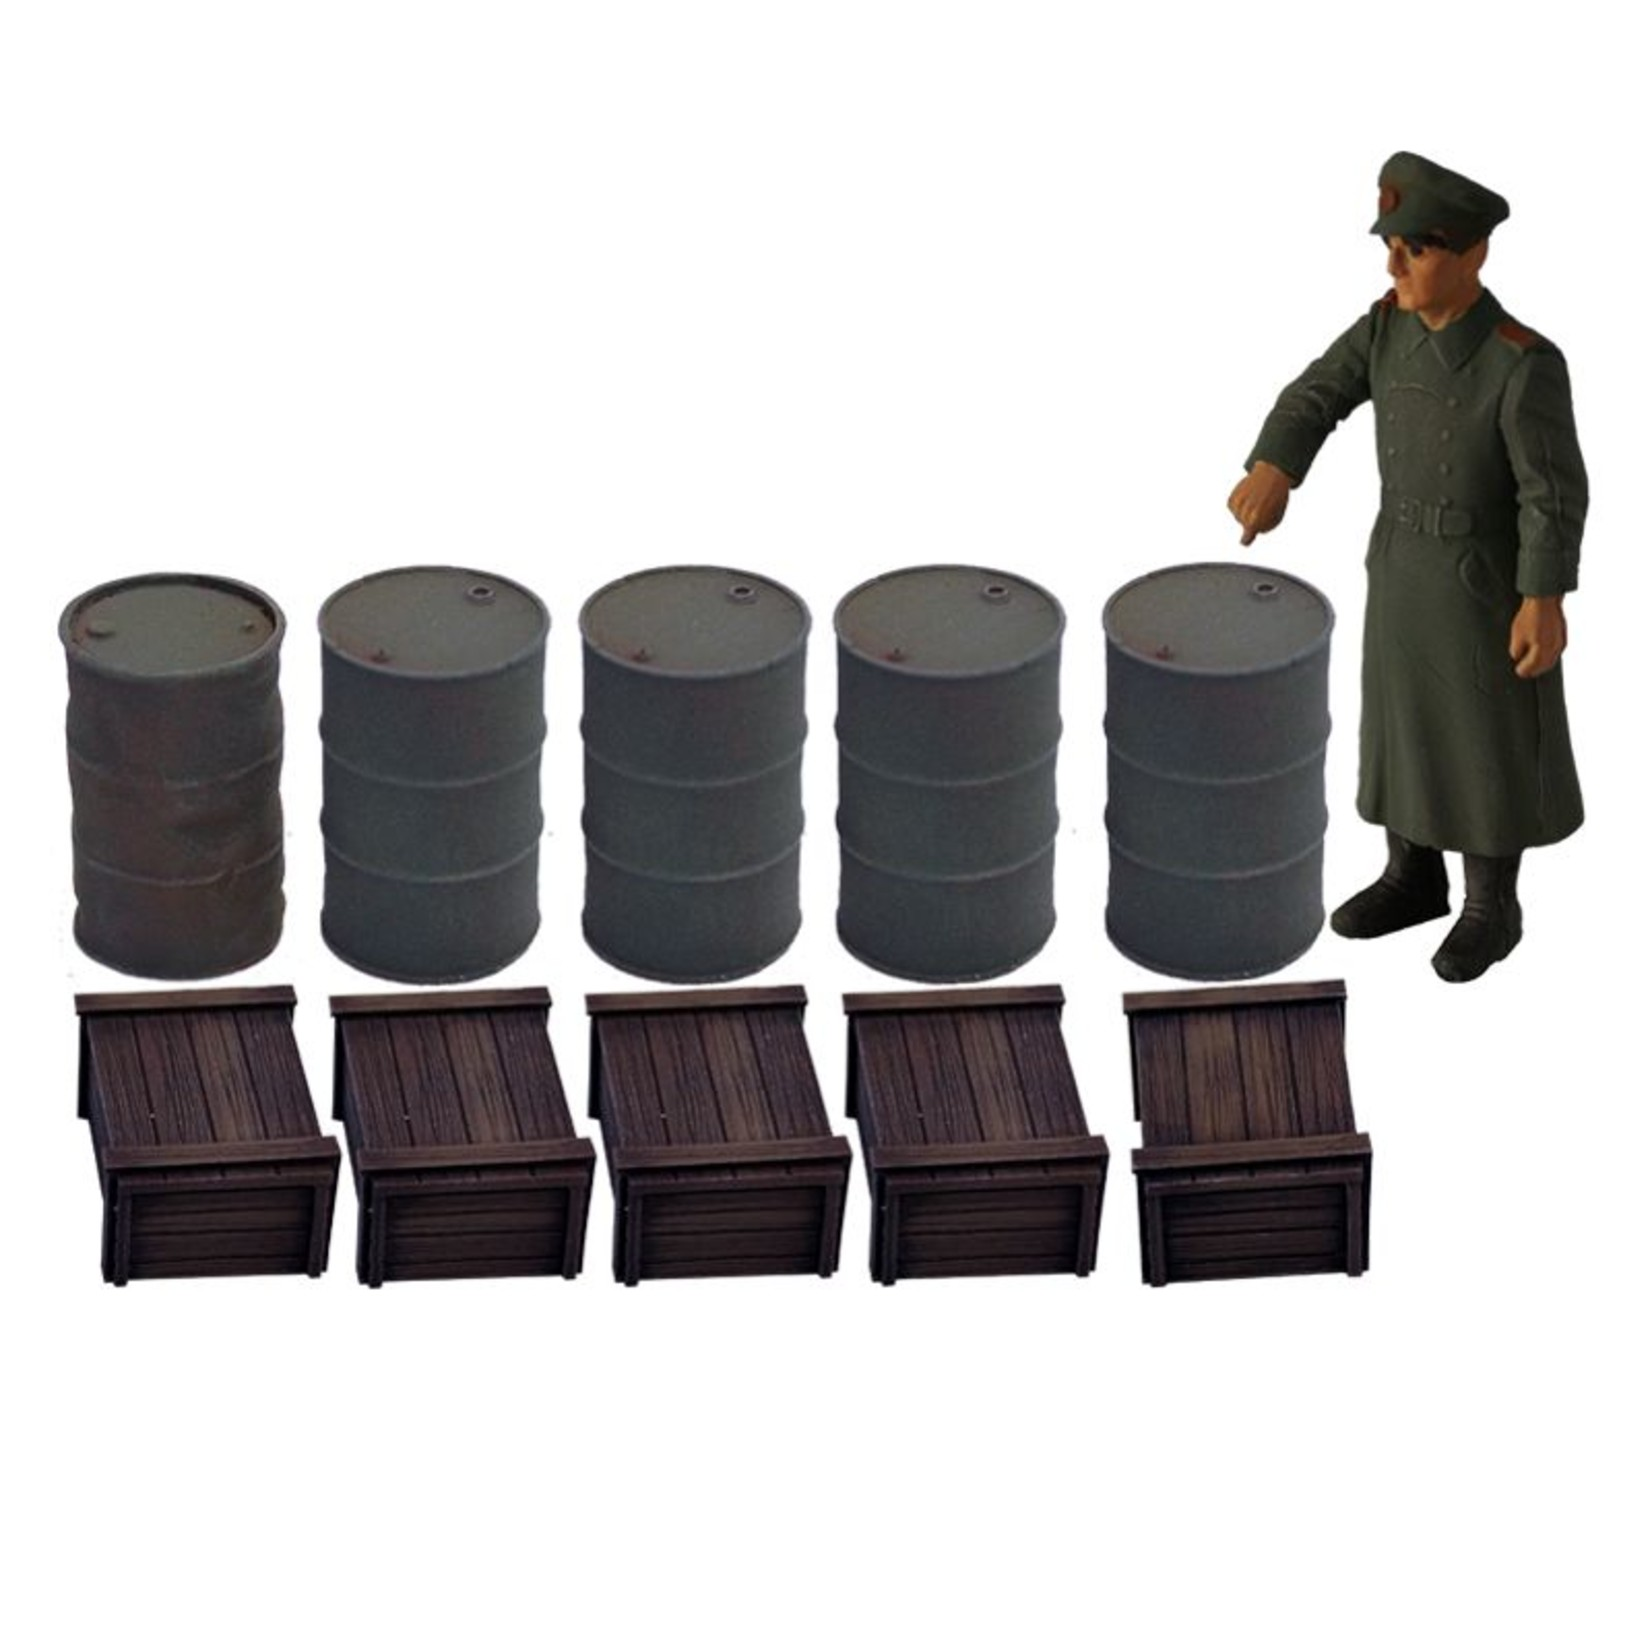 Barrels, boxes and military figure